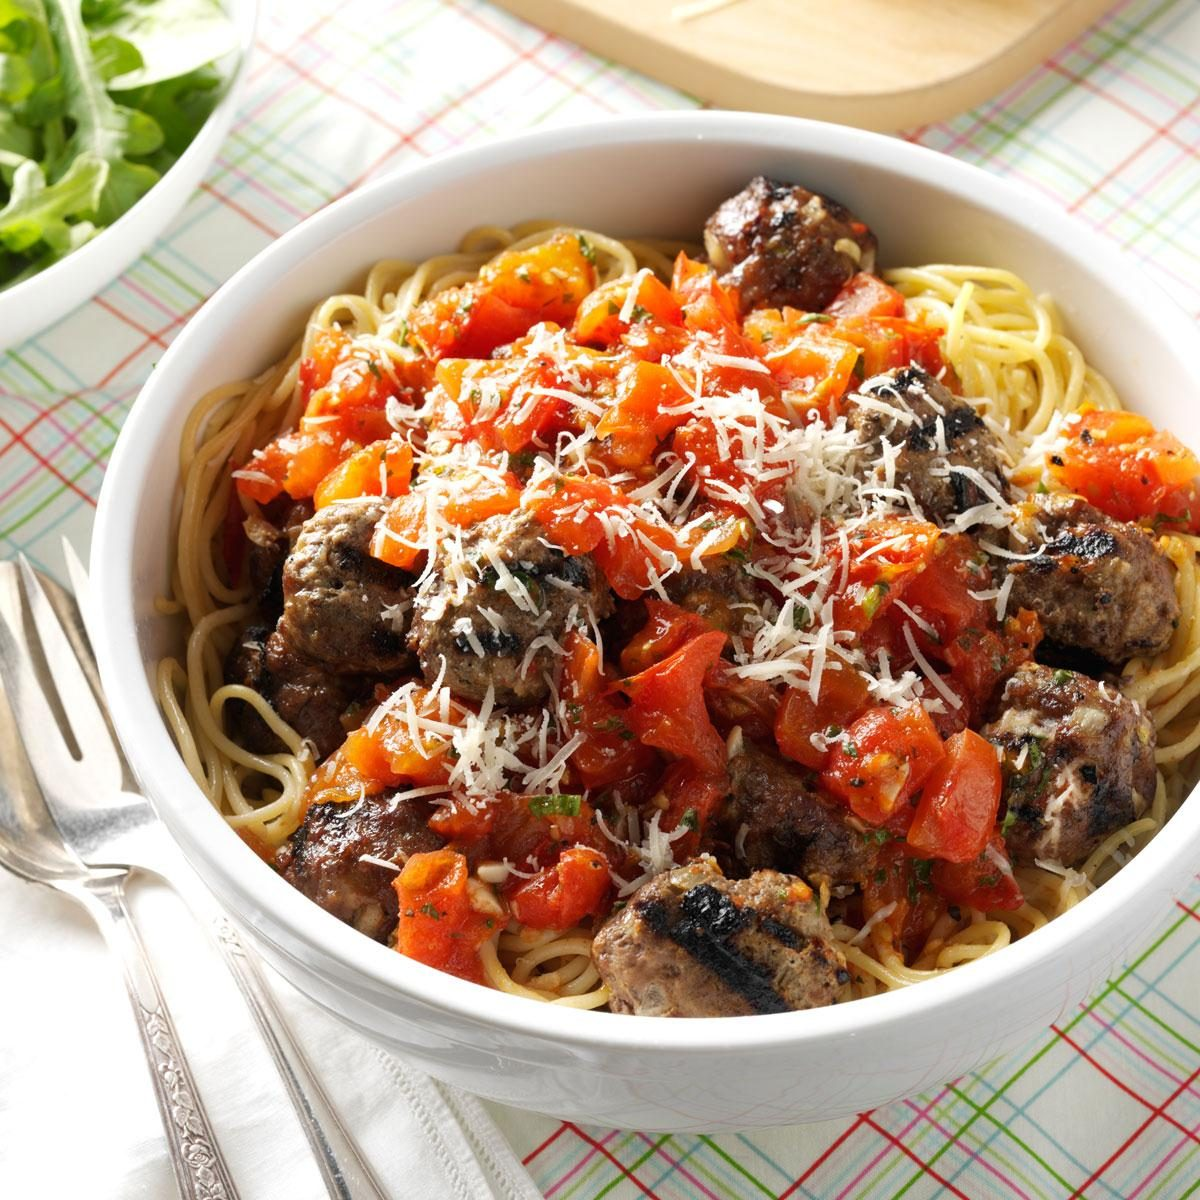 how to make meatballs for spaghetti without egg